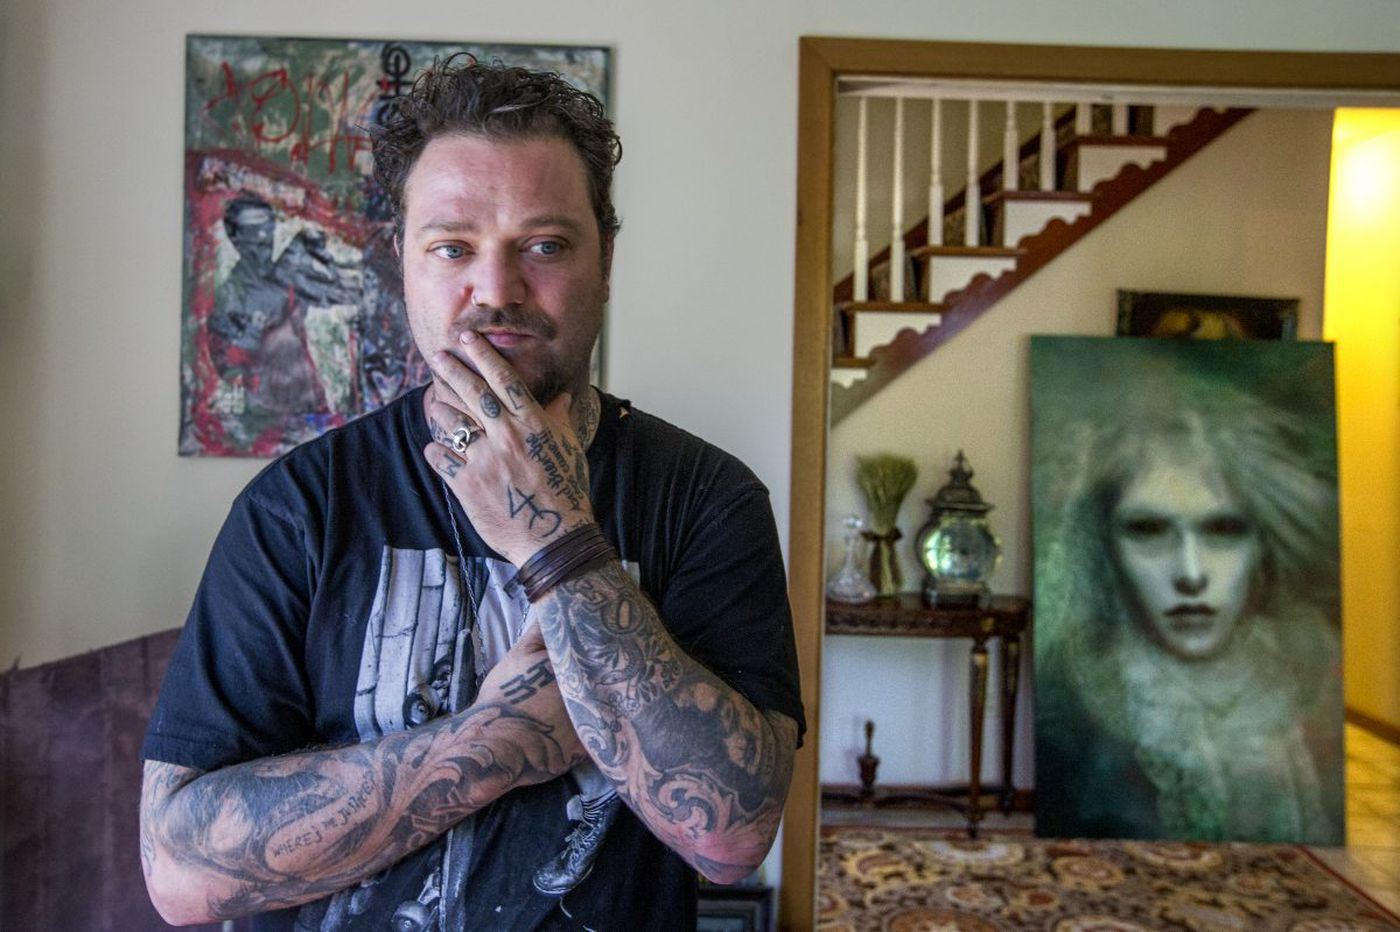 'Jackass' star Bam Margera arrested on DUI charges in California